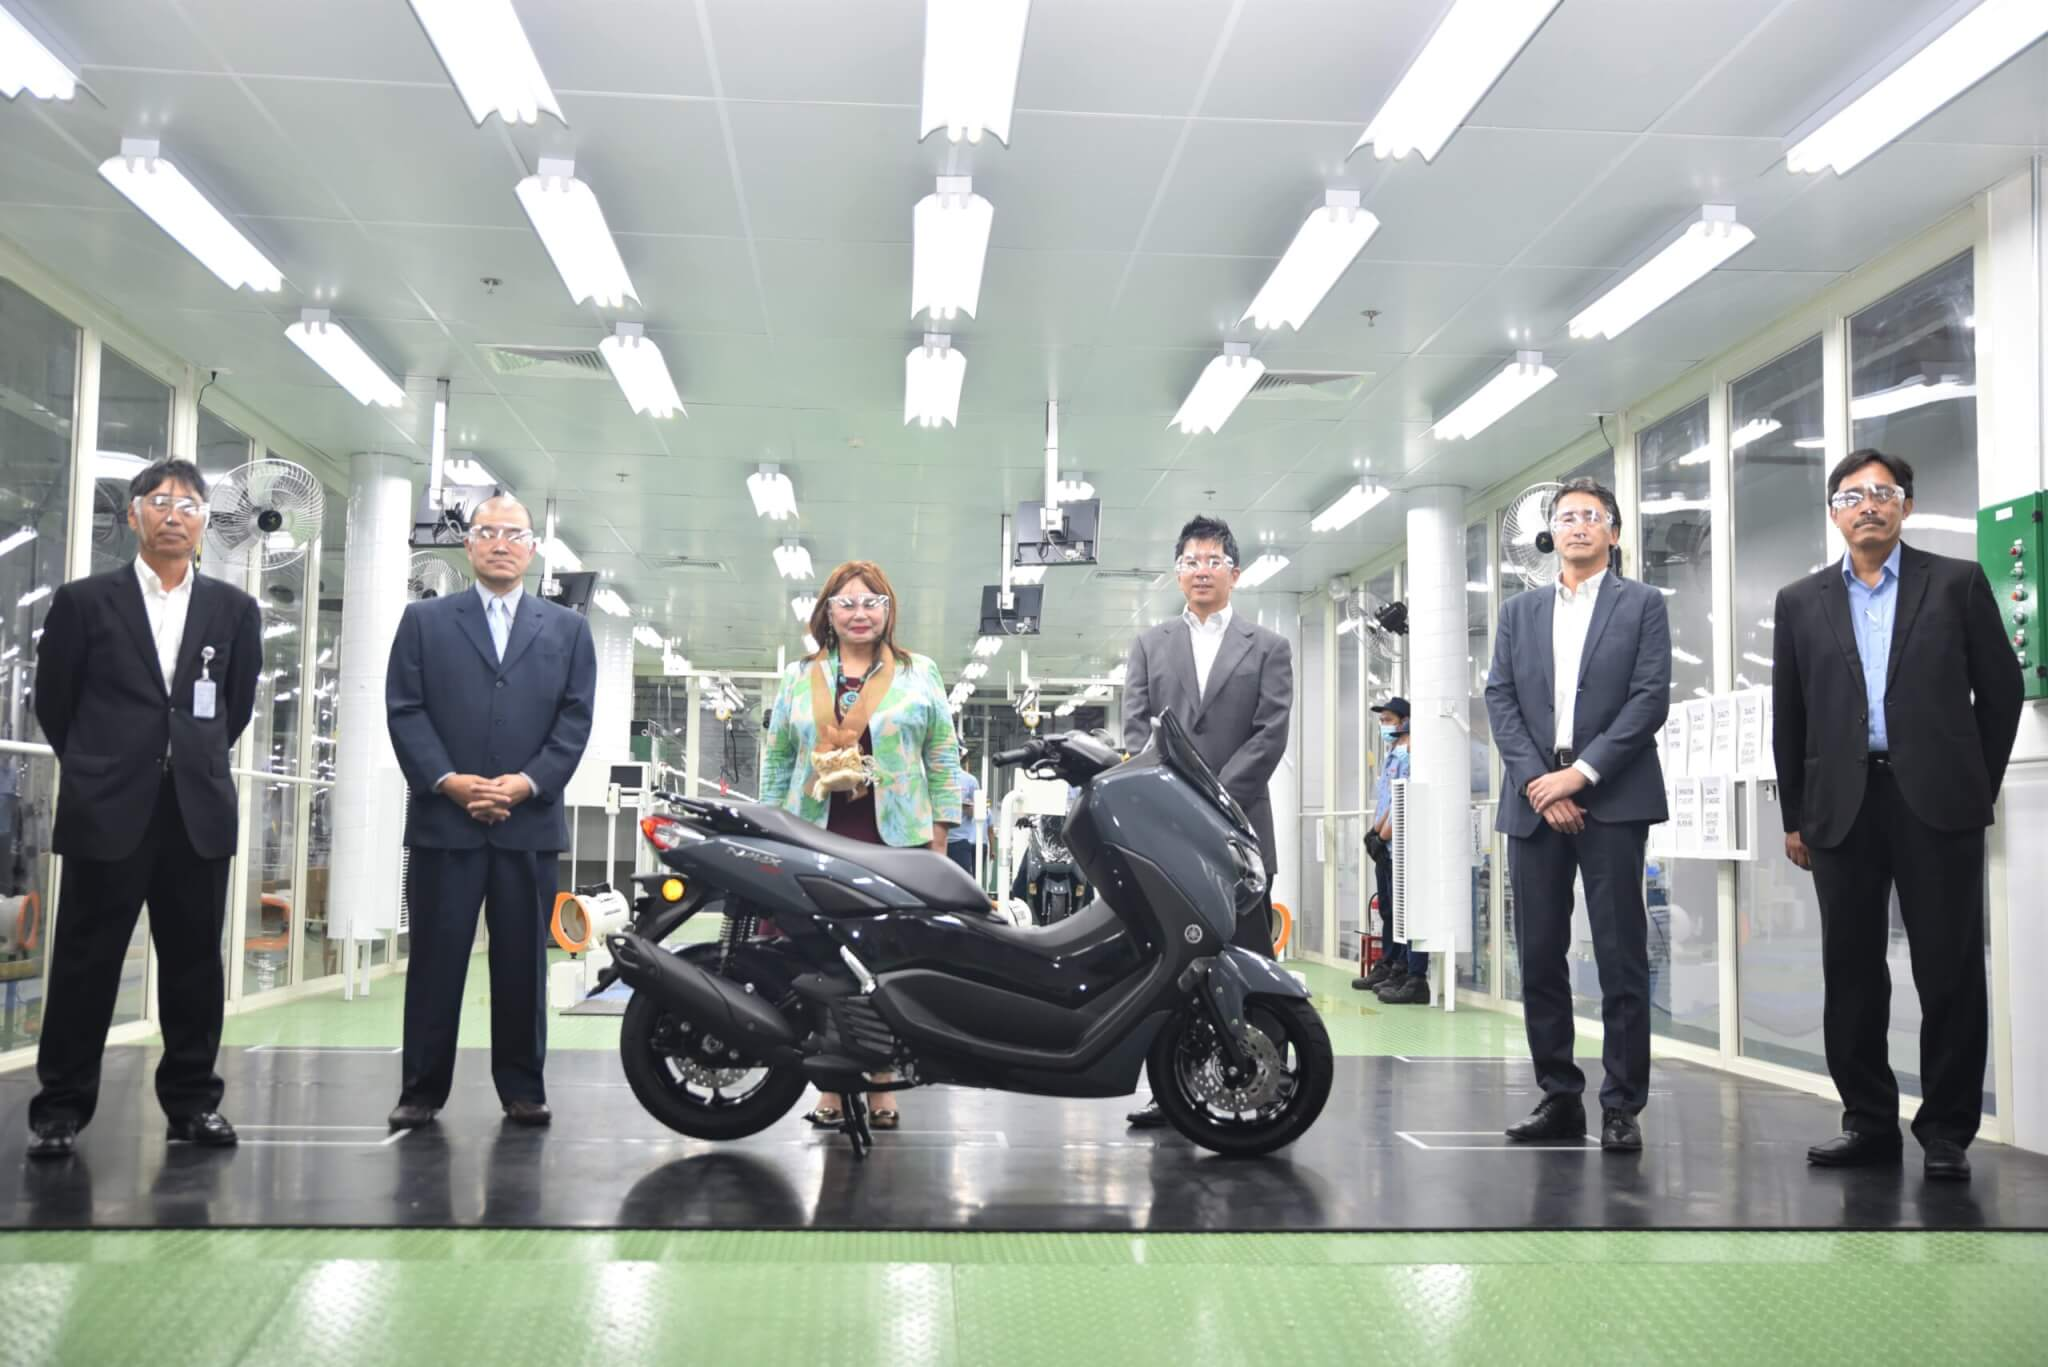 Yamaha expands manufacturing plant, adds over 1K jobs